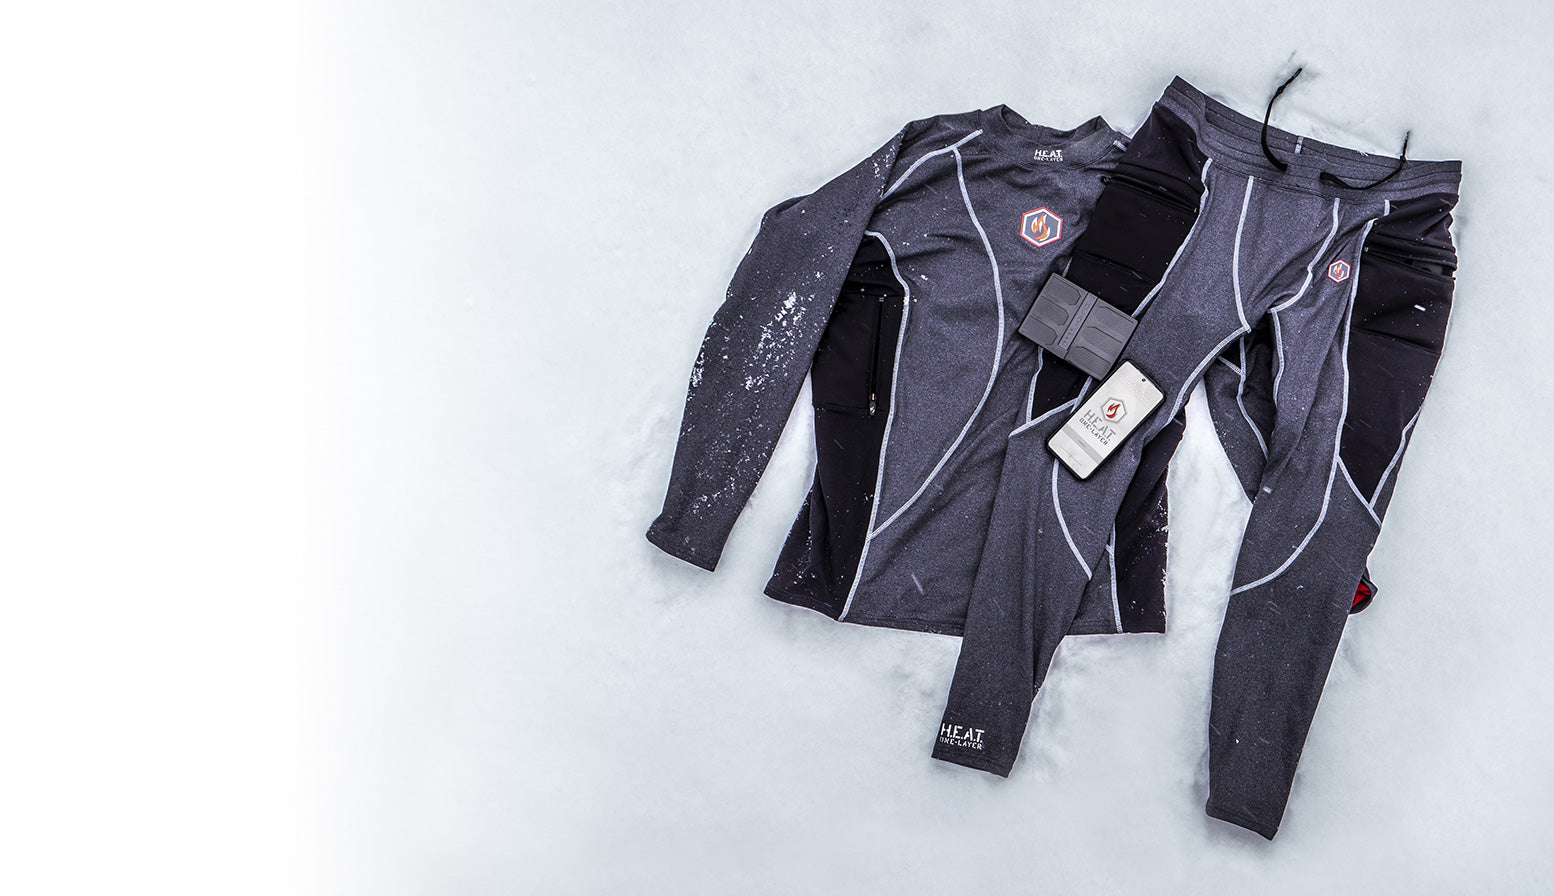 one-layer heated base layer cold weather gear